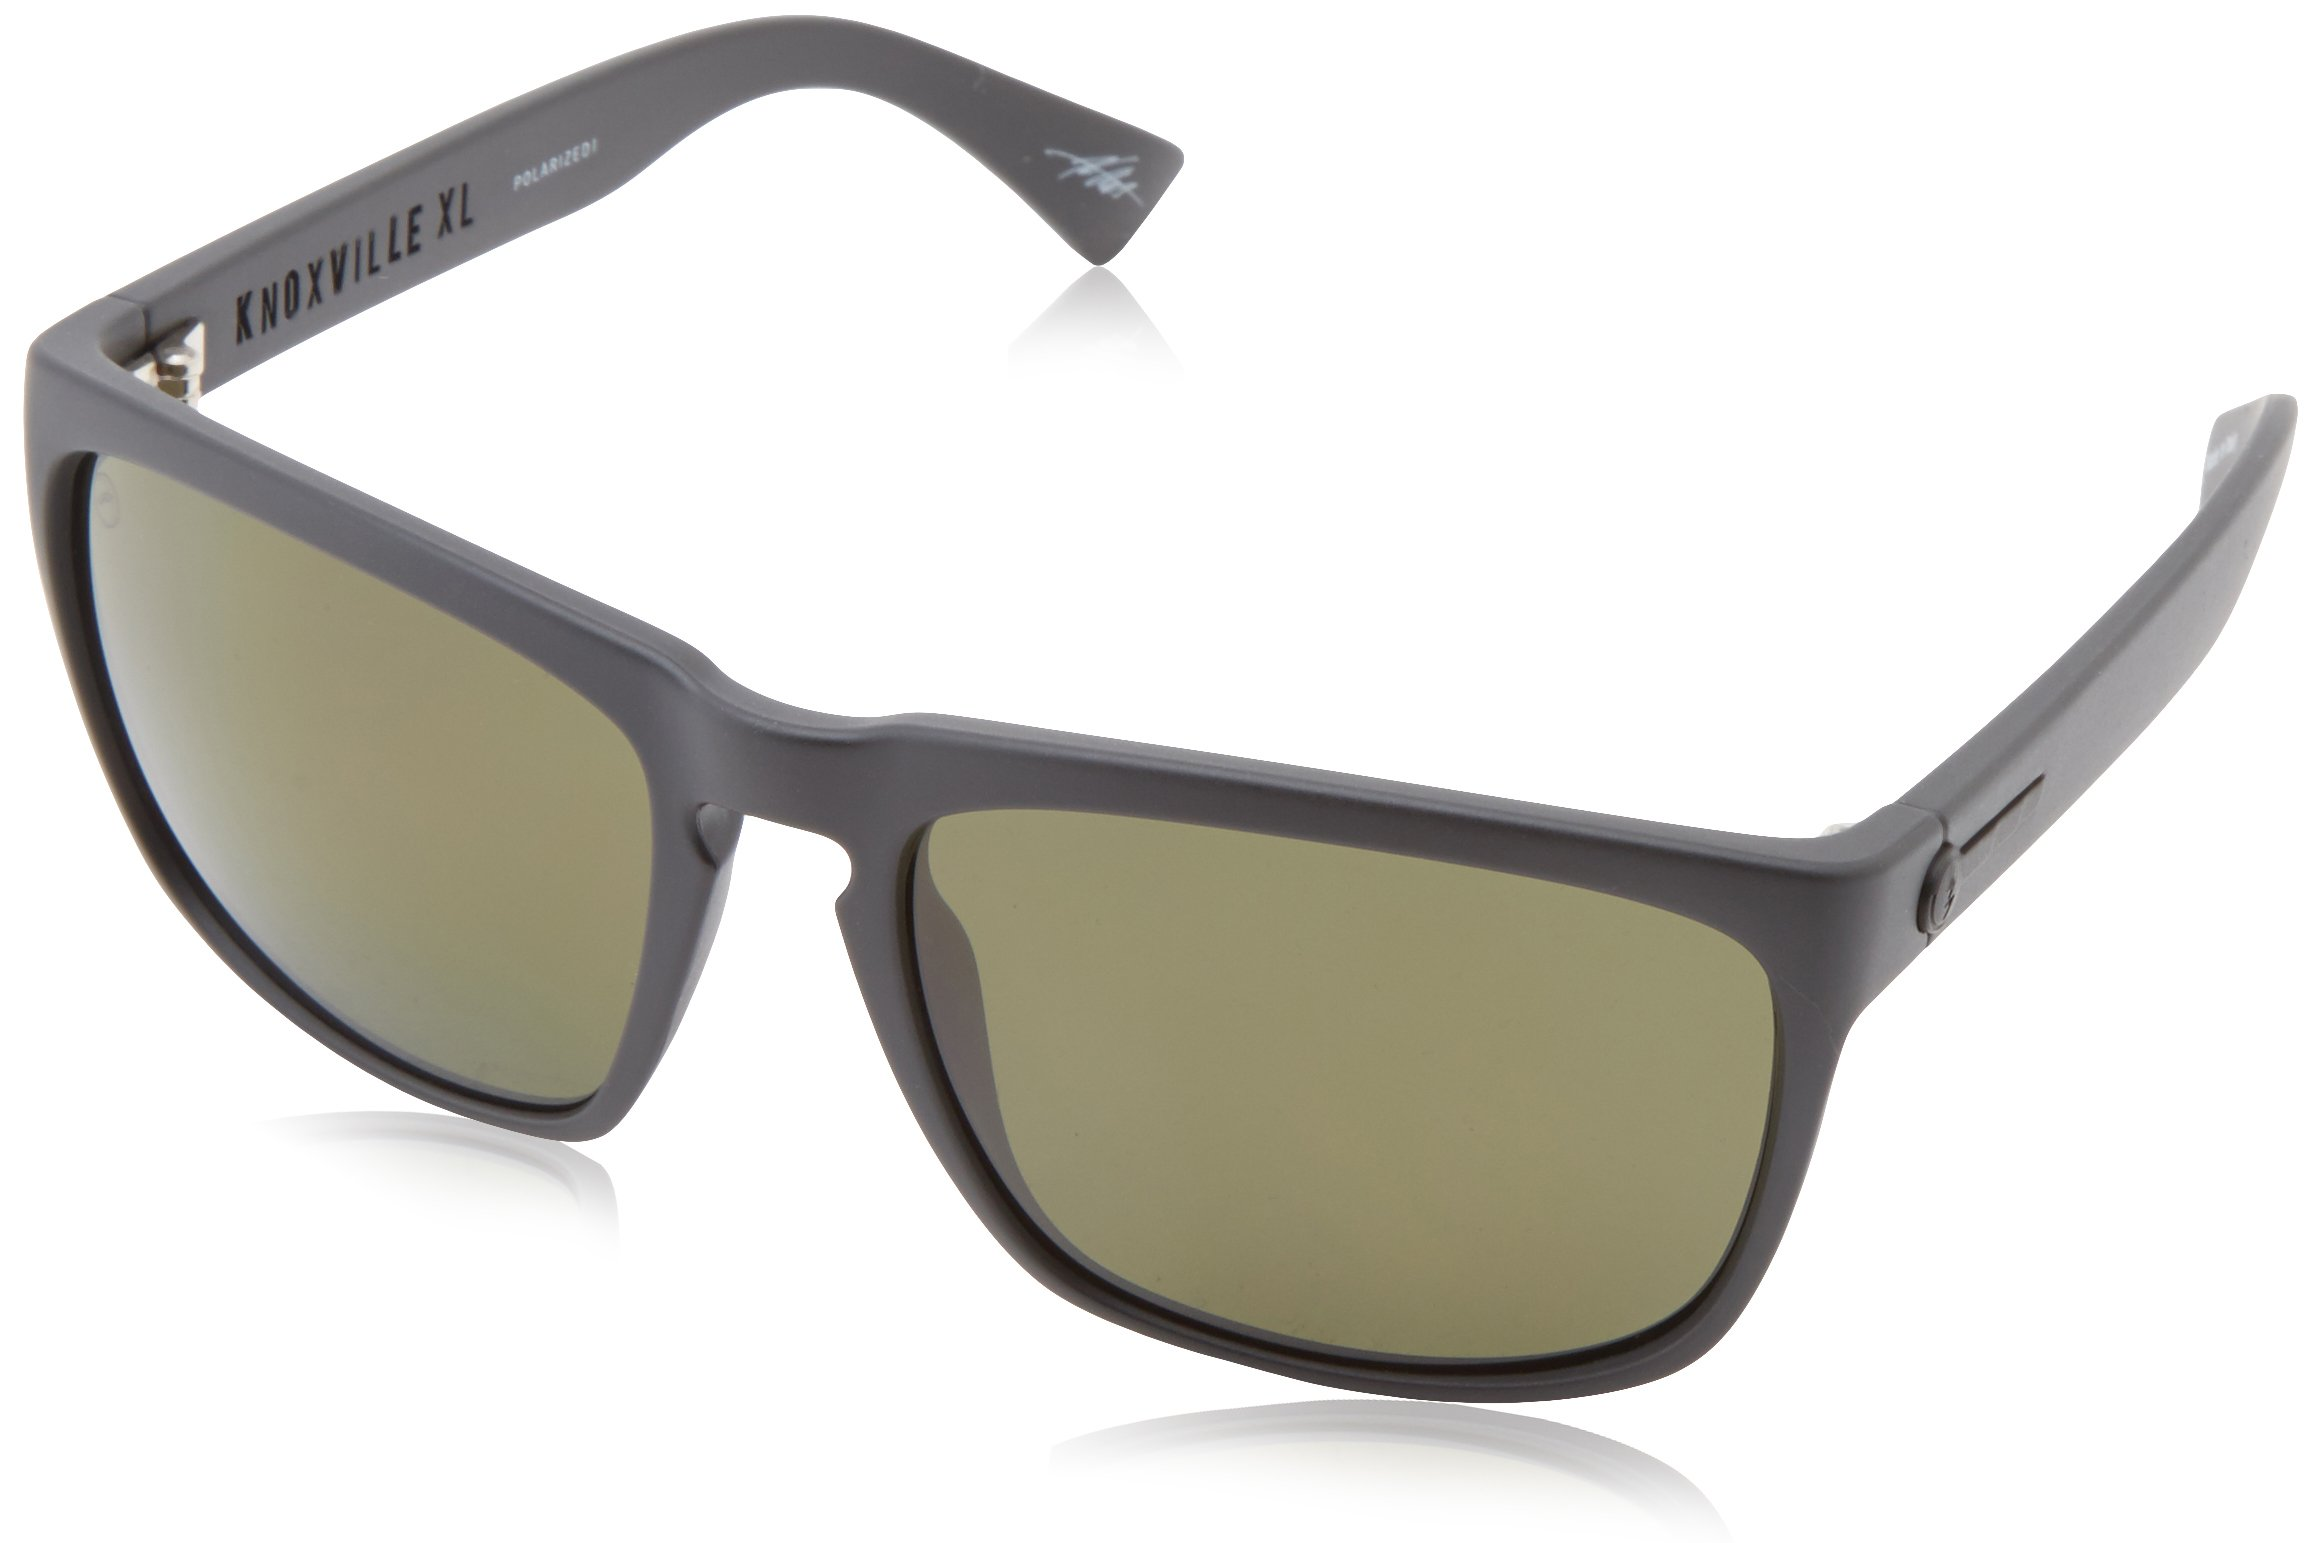 6179a07bf94 Electric Visual Knoxville XL Matte Black OHM Polarized Grey Sunglasses